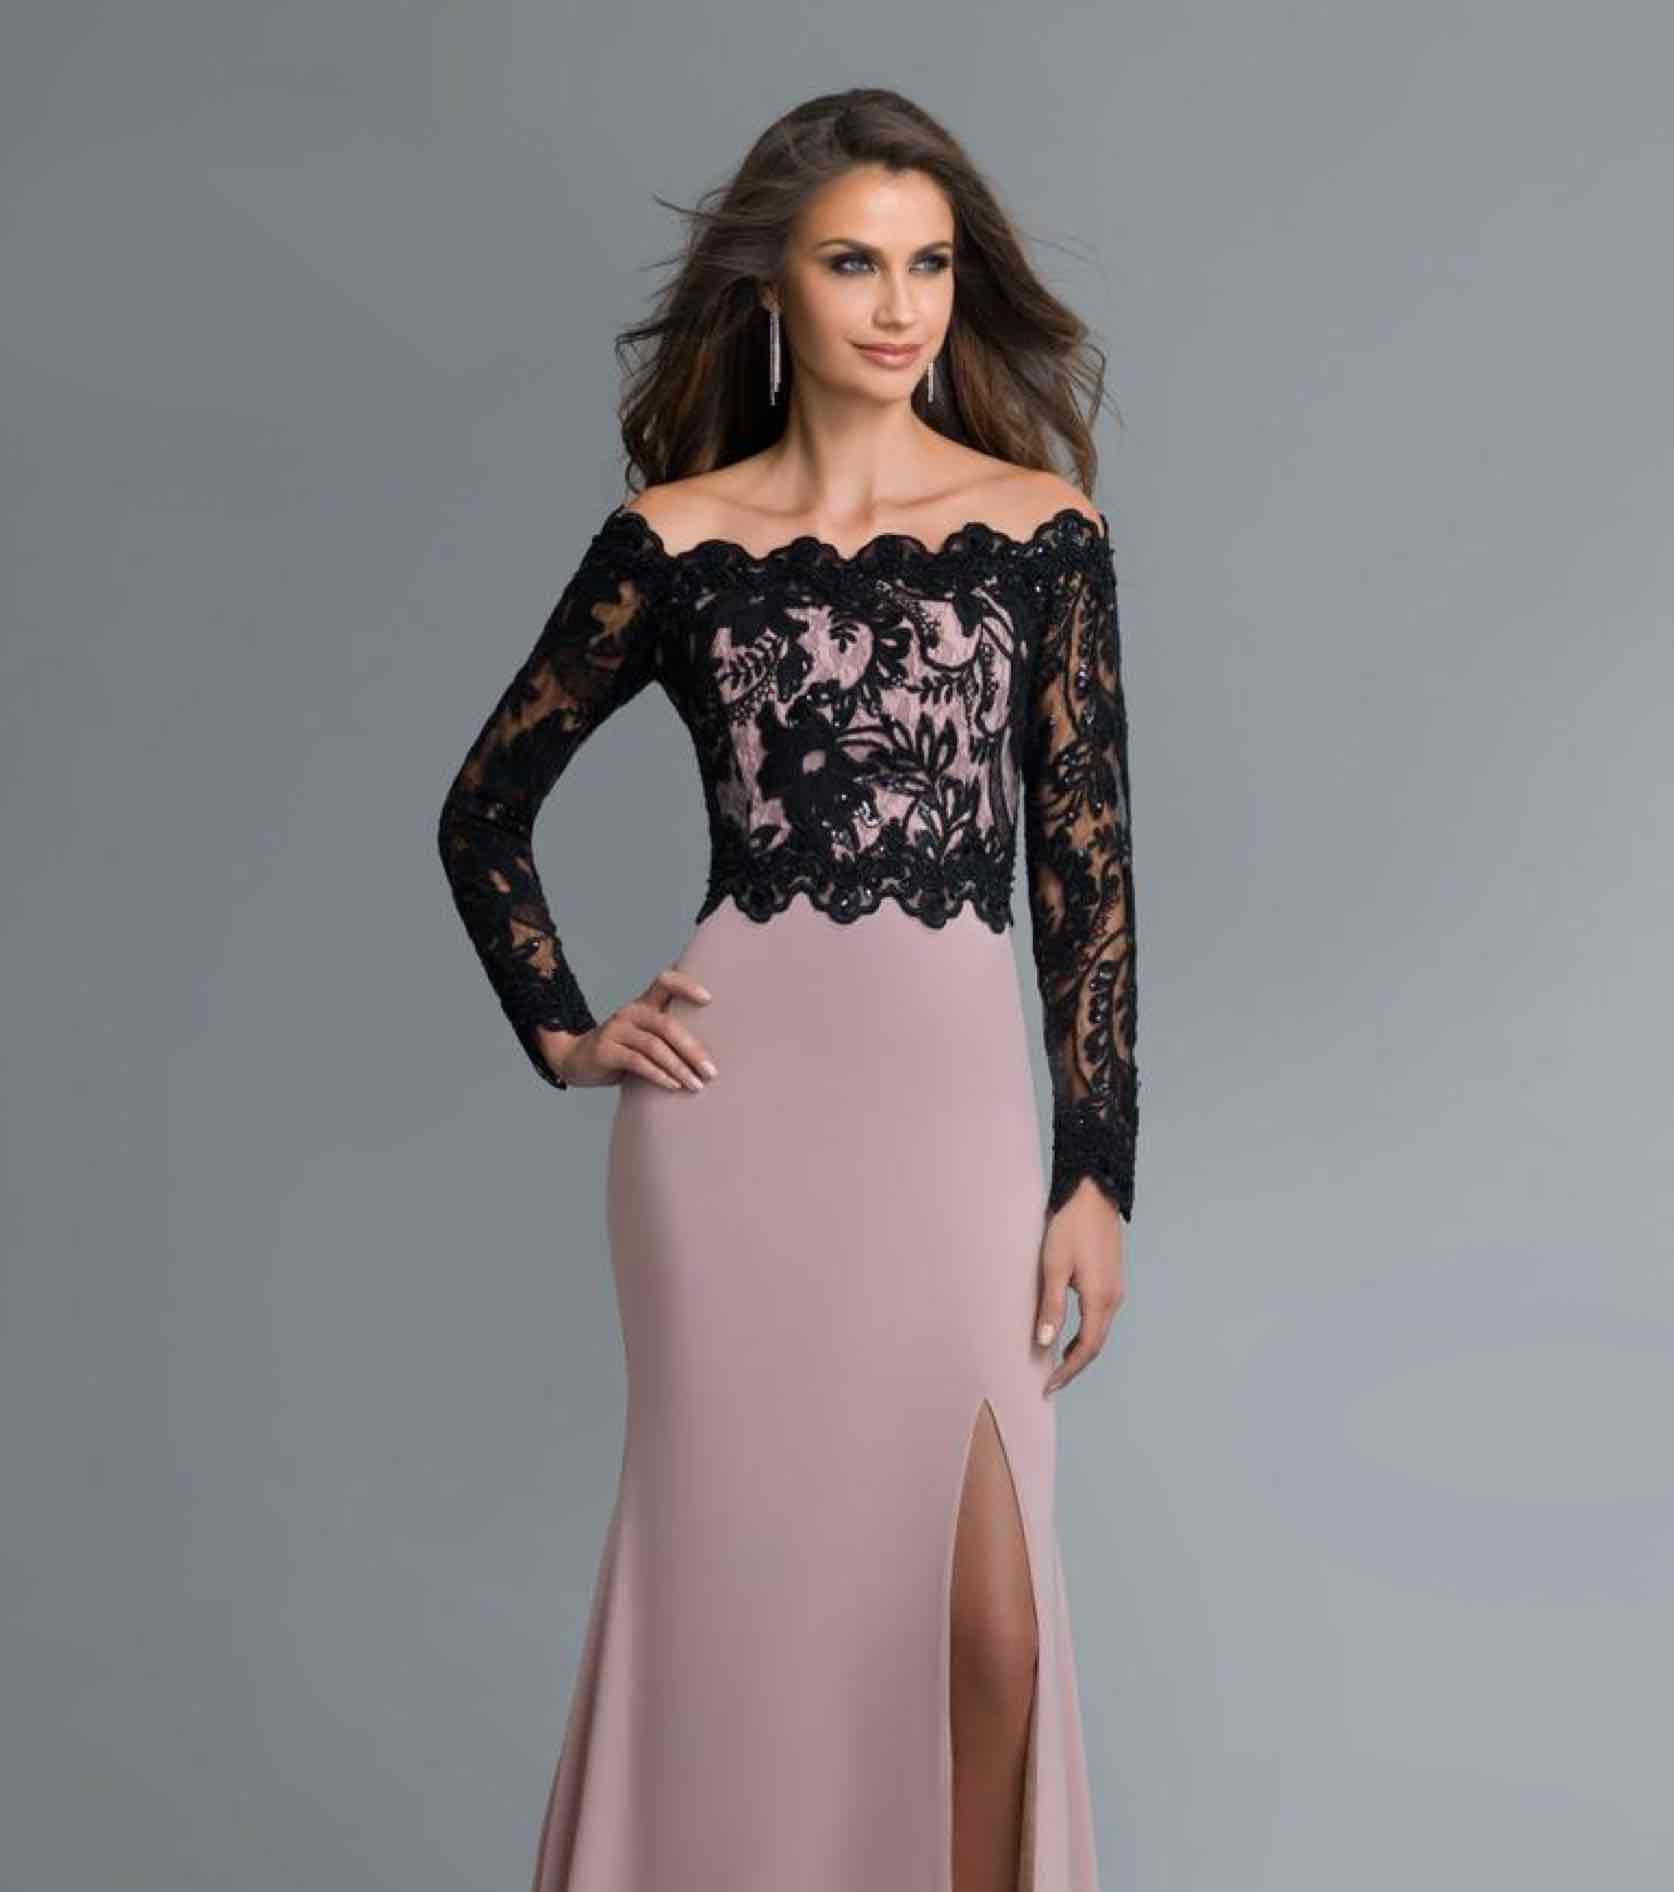 Model in pink Saboroma gown with black lace off the shoulder top